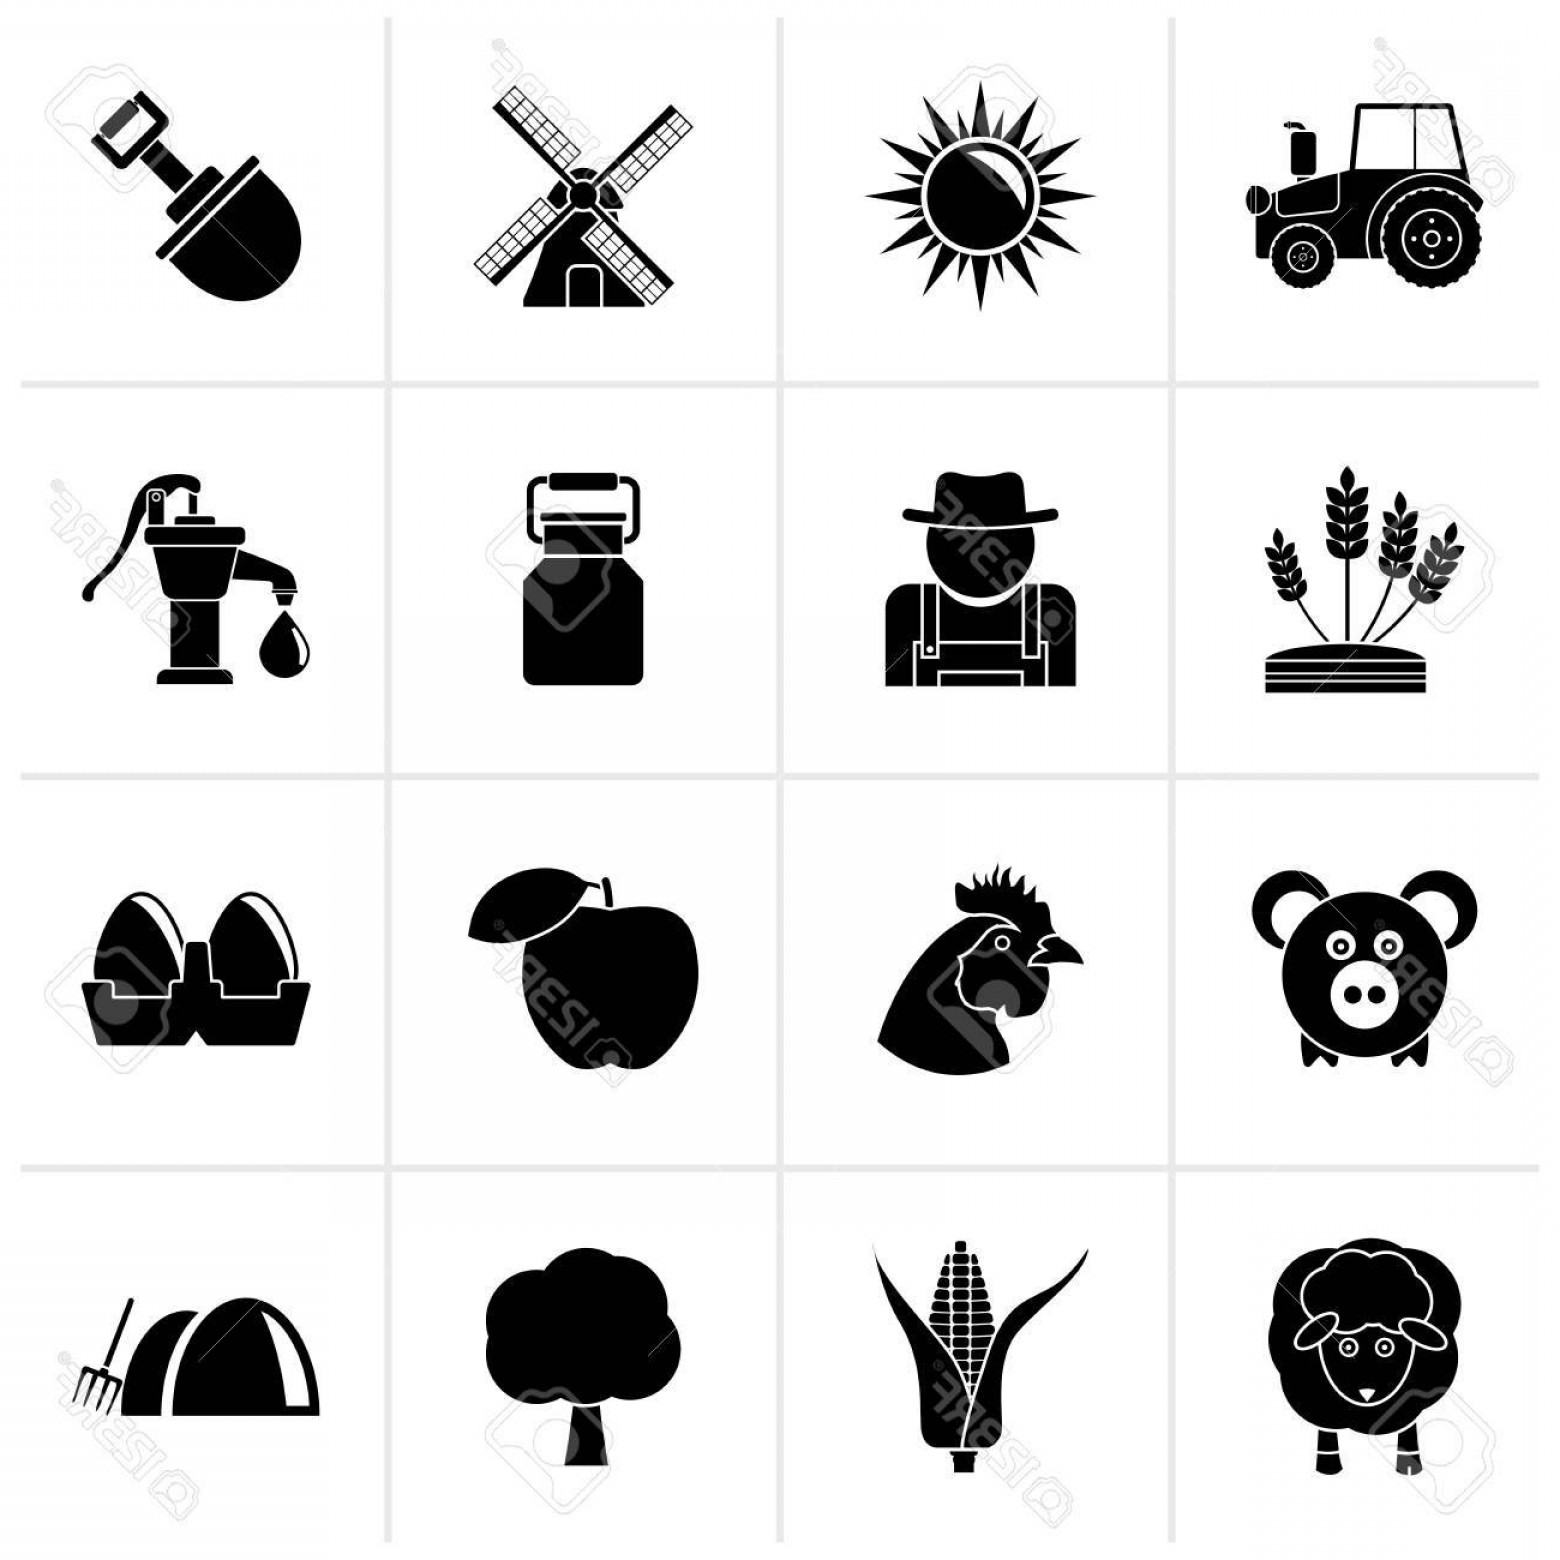 Agriculture Vector Icons: Photostock Vector Black Agriculture And Farming Icons Vector Icon Set